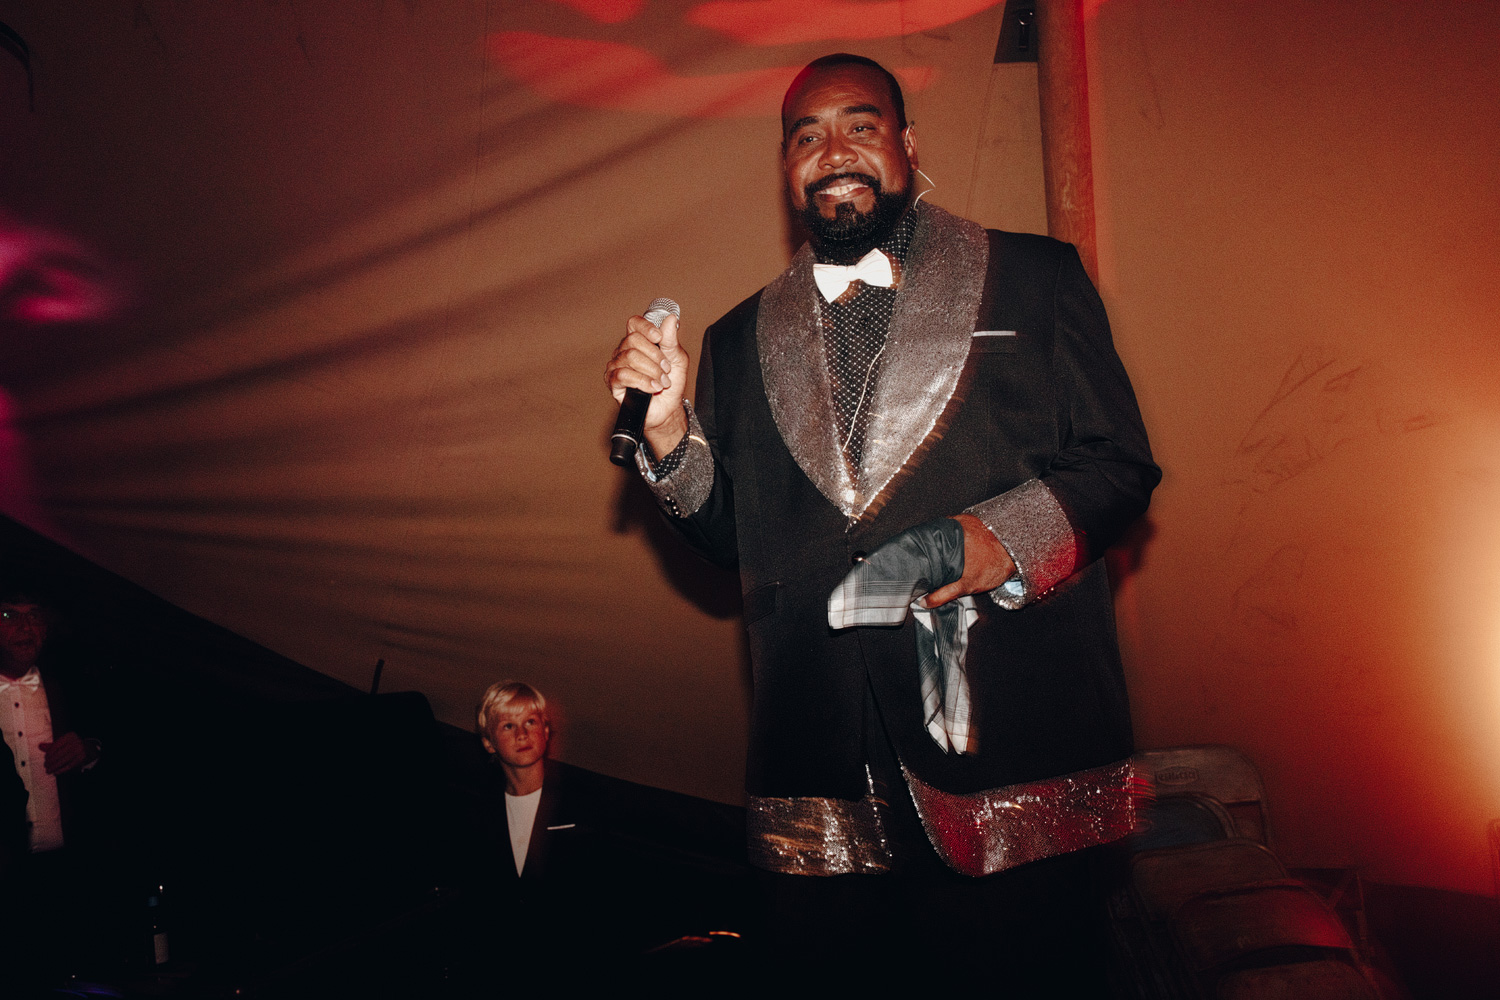 Barry White impersonator at wedding smiling